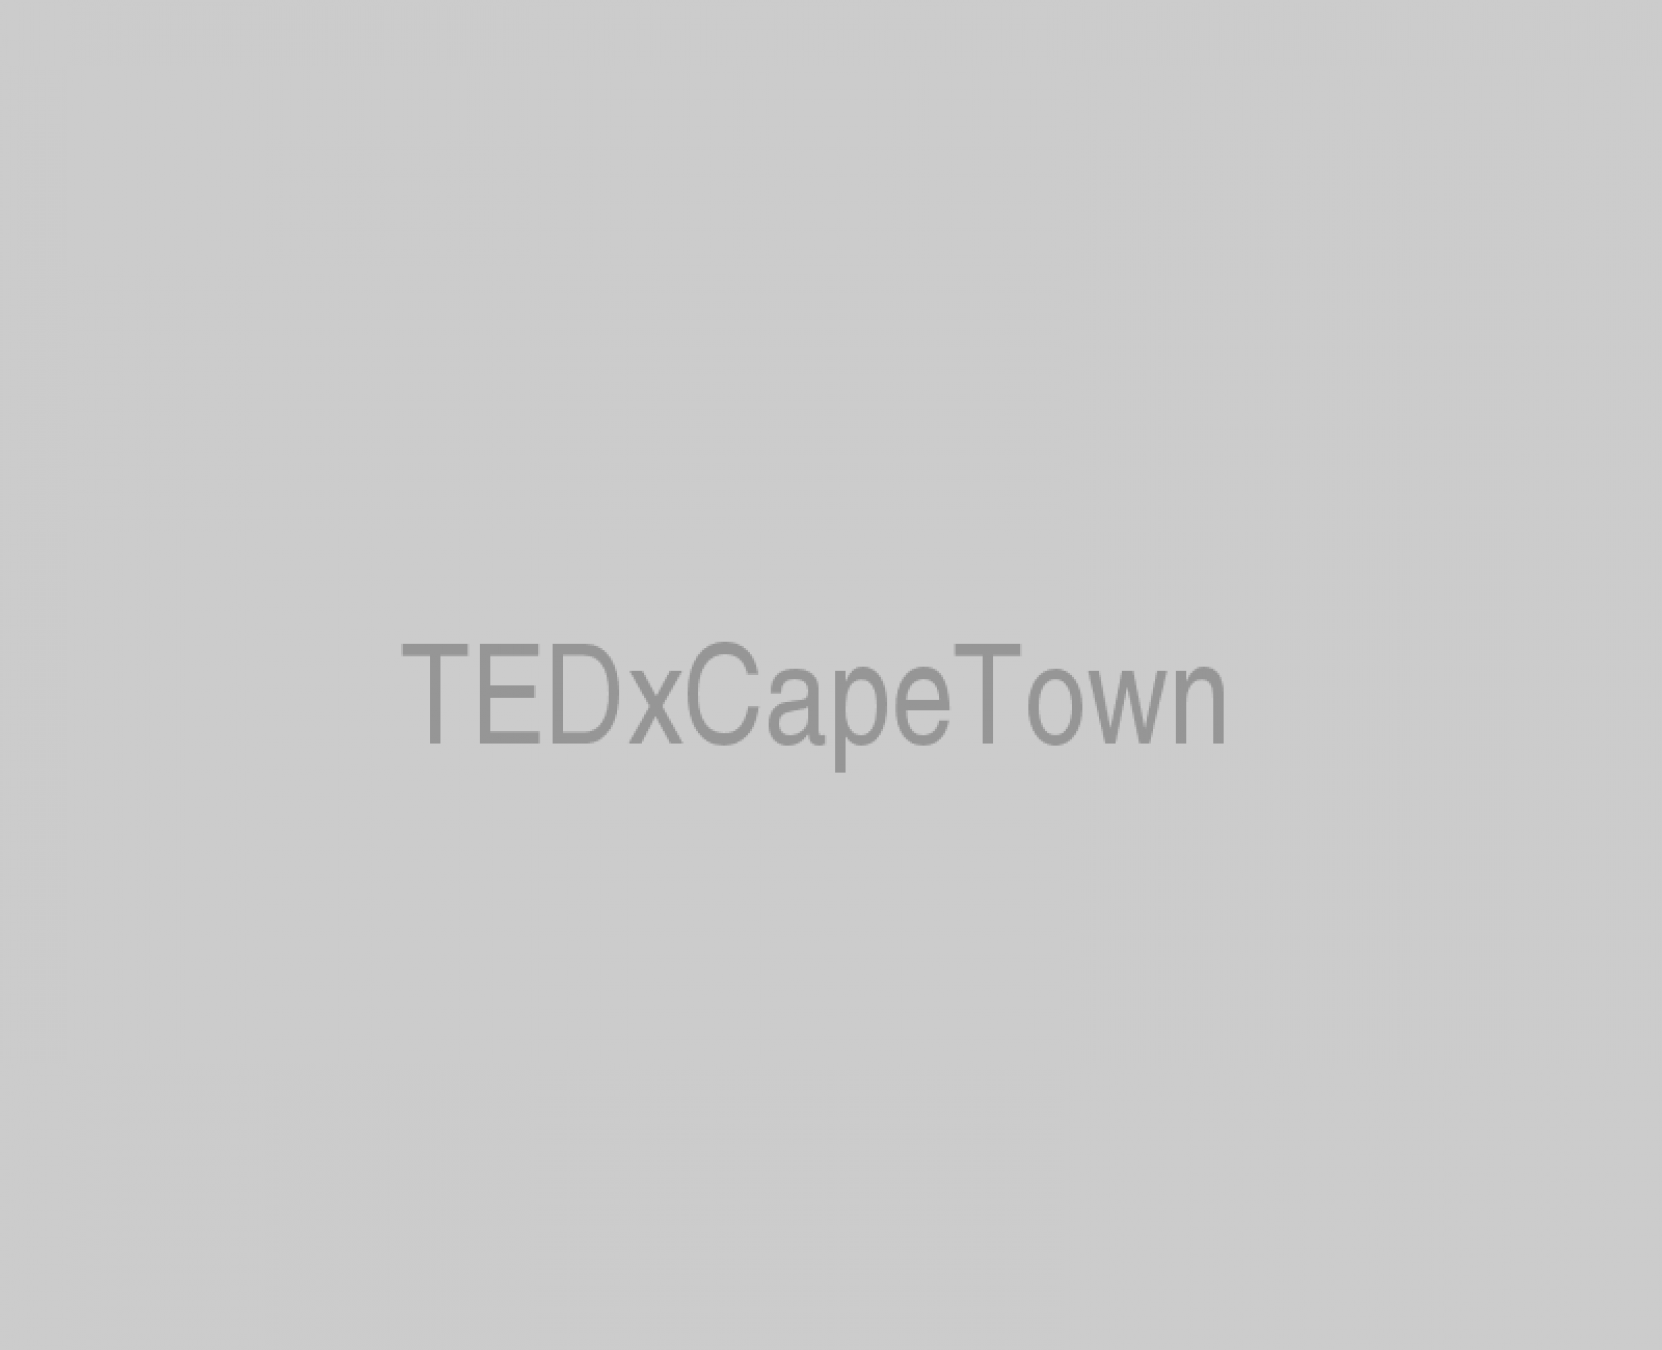 TEDxCapeTown placeholder